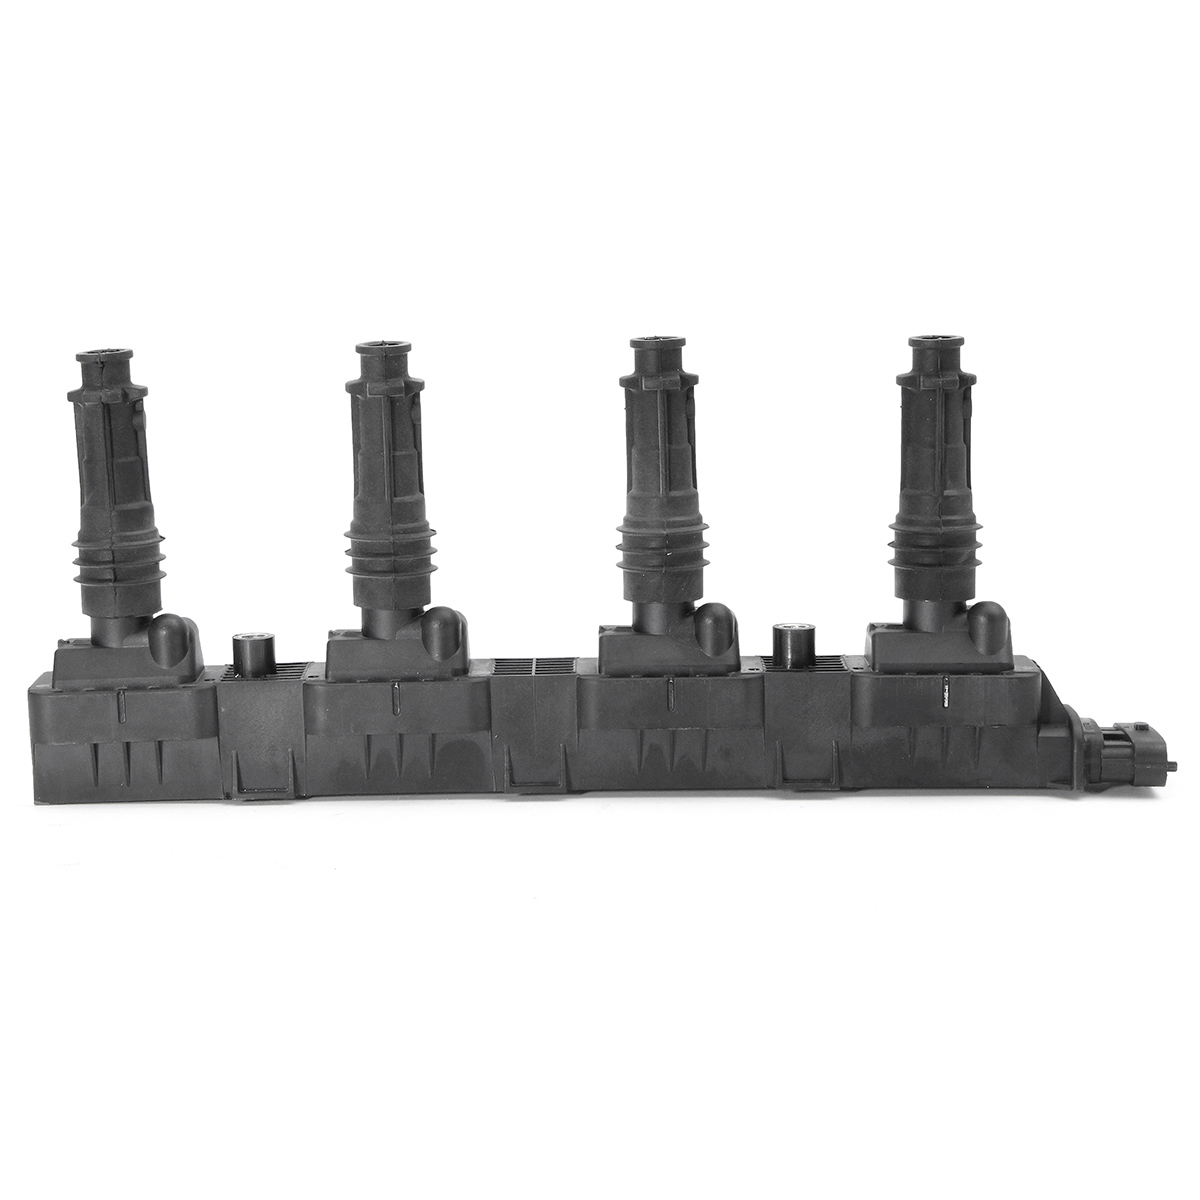 6 Pin Ignition Module Plug Connection Ignition Coil For Vauxhall ASTRA  CORSA Black #90543253 Polybutylene Terephthalate-in Ignition Coil from  Automobiles ...